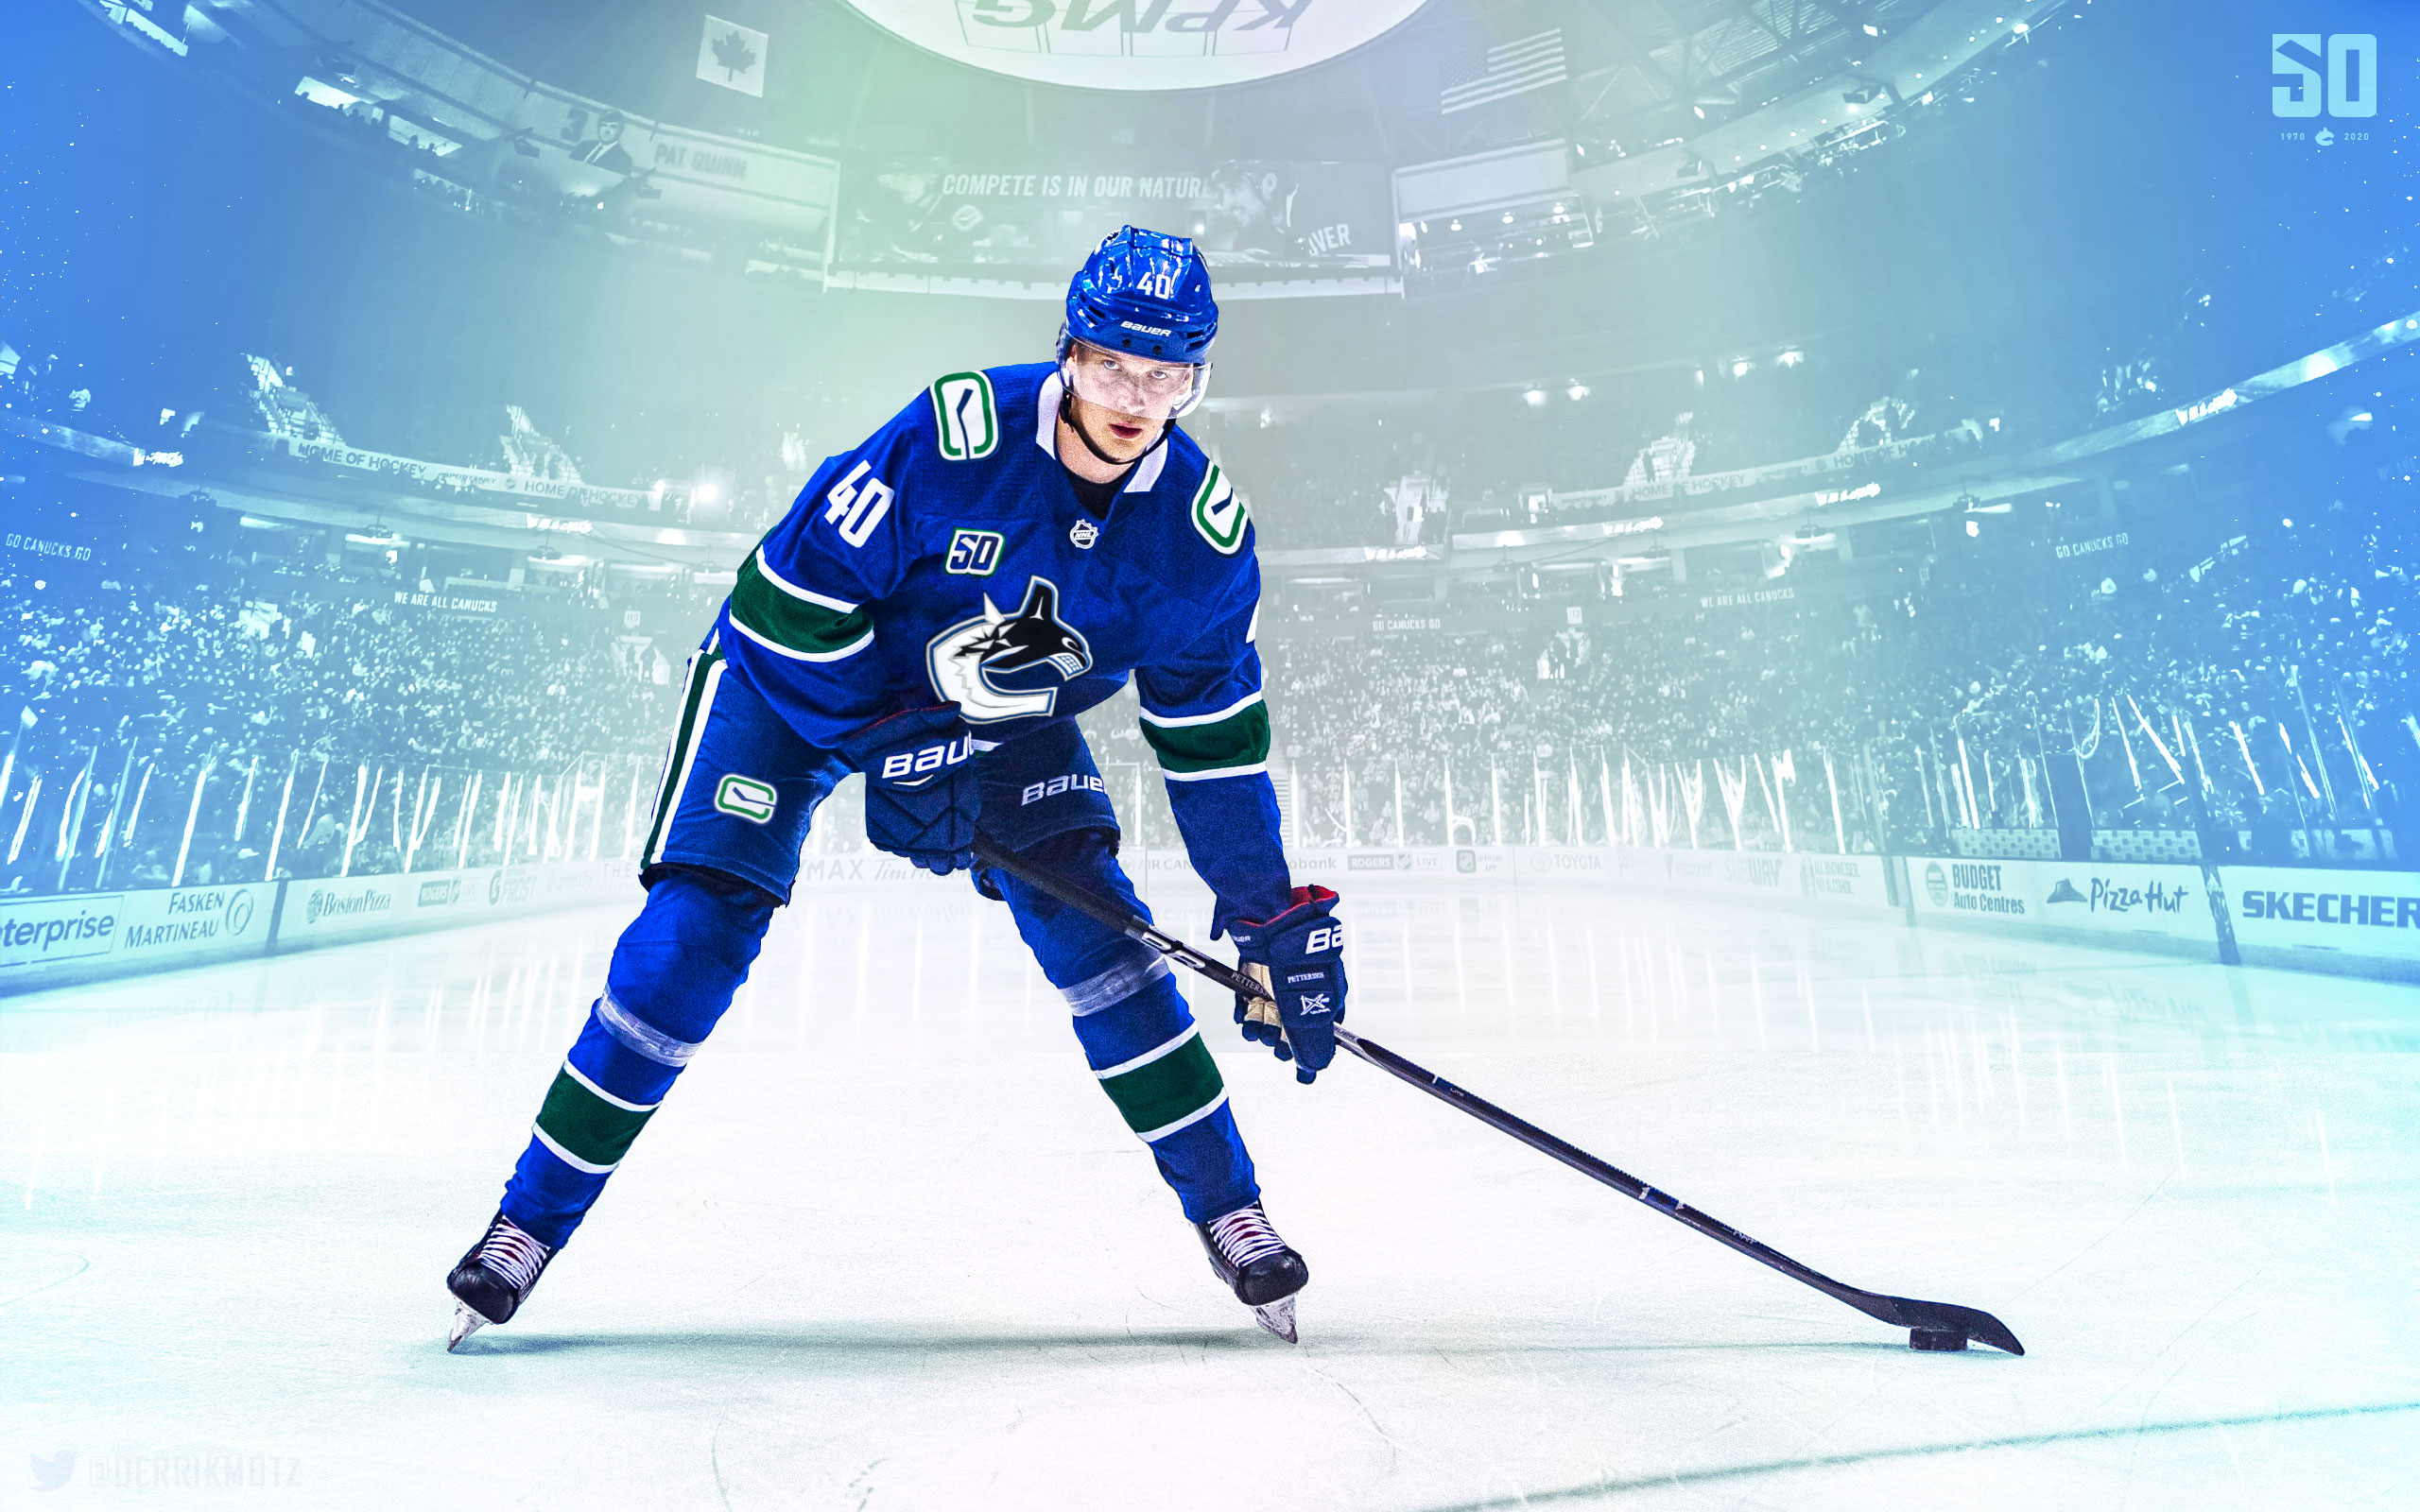 Elias Pettersson wallpaper